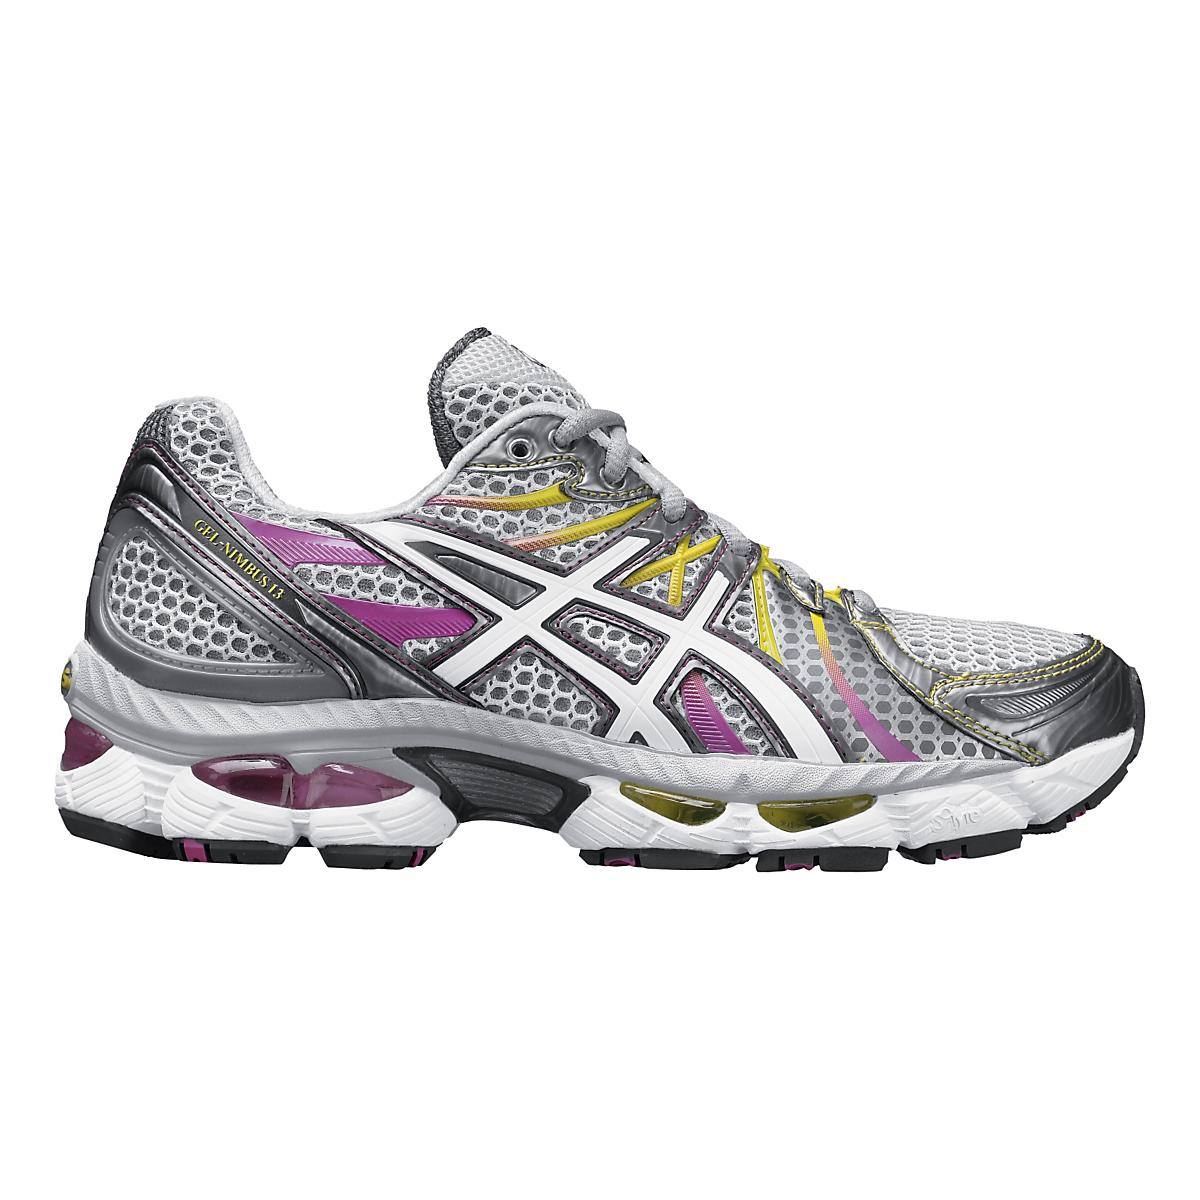 3a3f0892ff Womens ASICS GEL-Nimbus 13 Running Shoe at Road Runner Sports